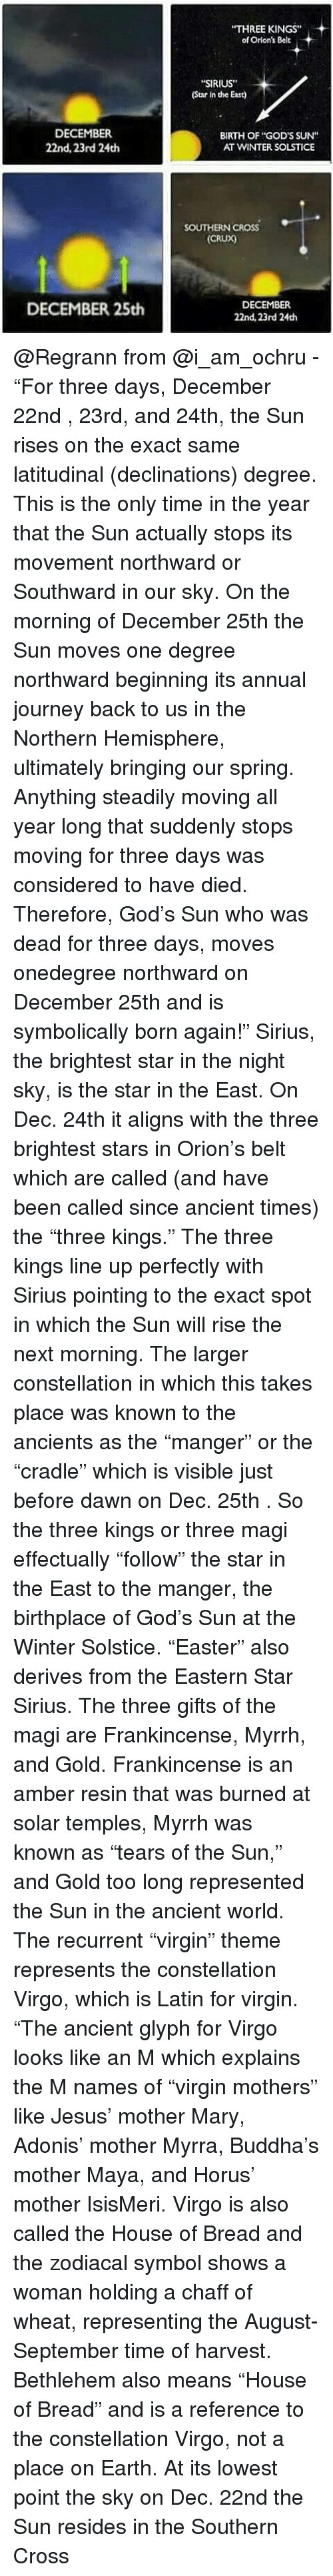 December 22nd 23rd 24th December 25th Three Kings Of Orions Belt